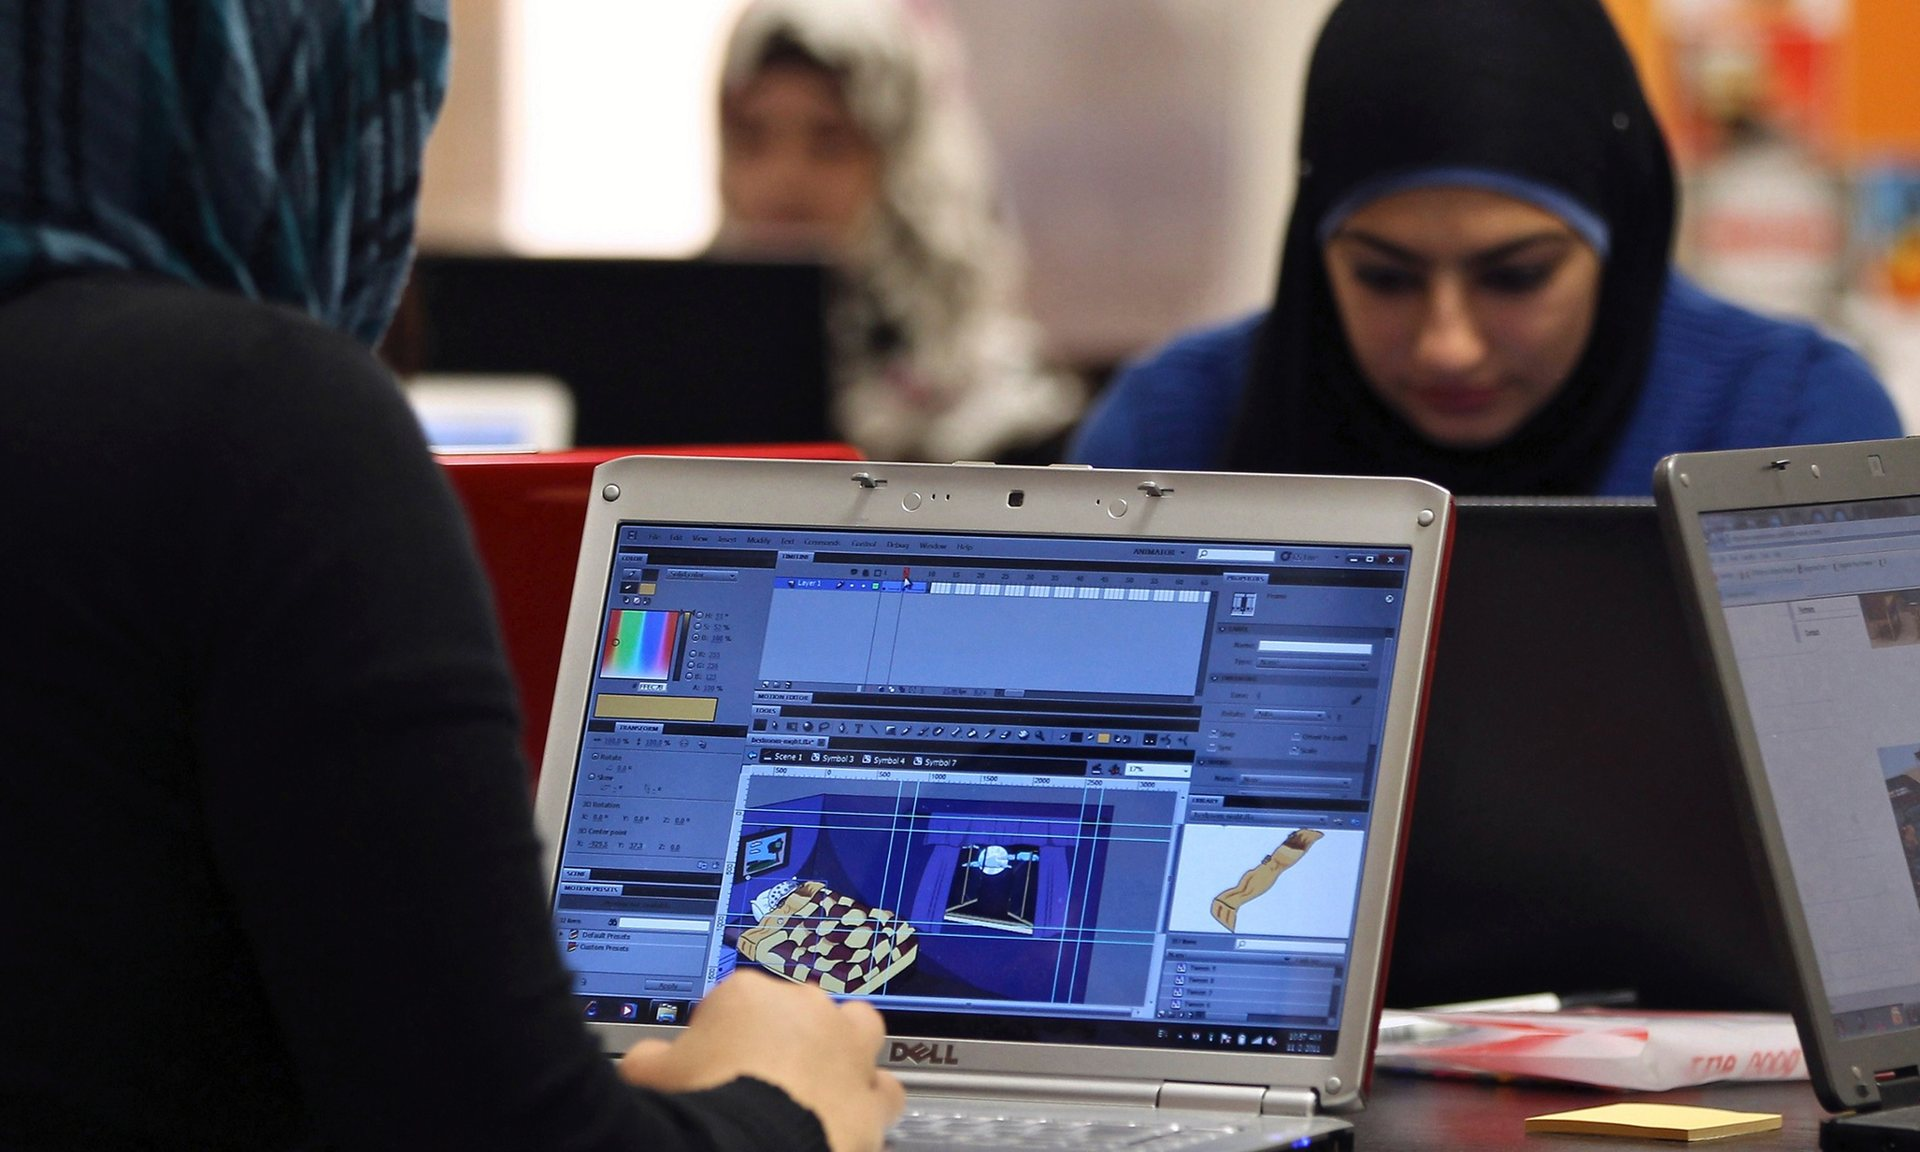 Internet work done at home or in single-sex environments can provide Arab women in technology with opportunities they would not otherwise have in public, male-dominated workplaces.